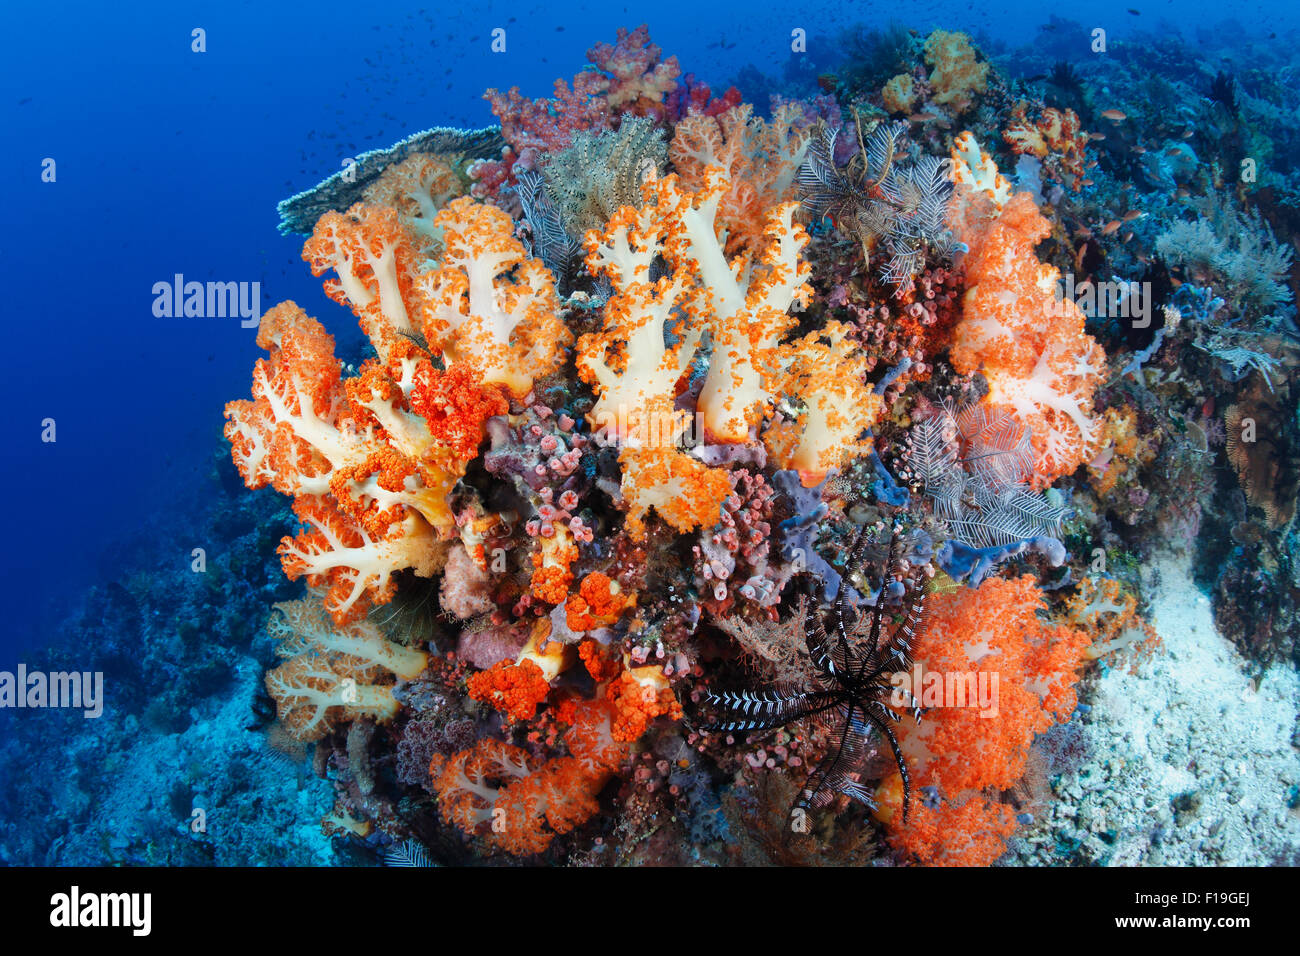 px0206-D. soft corals (Dendronephthya sp.) thrive along current-swept reefs. Indonesia, tropical Pacific Ocean. - Stock Image